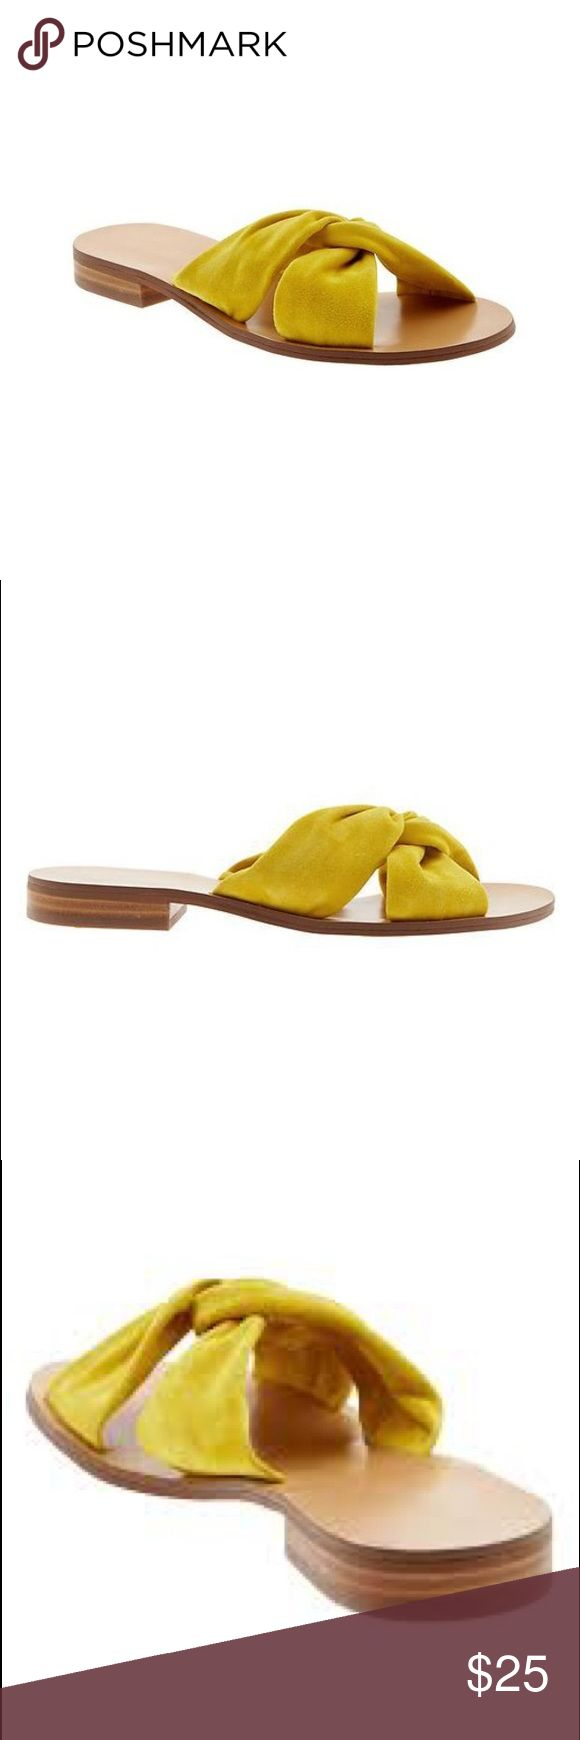 Banana Republic suede yellow sandals These are the Banana Republic Karolina Suede slide sandal in a yellow mustard color. They are the perfect summer staple to have. I have worn them a couple of times but they are still in good condition. Banana Republic Shoes Sandals